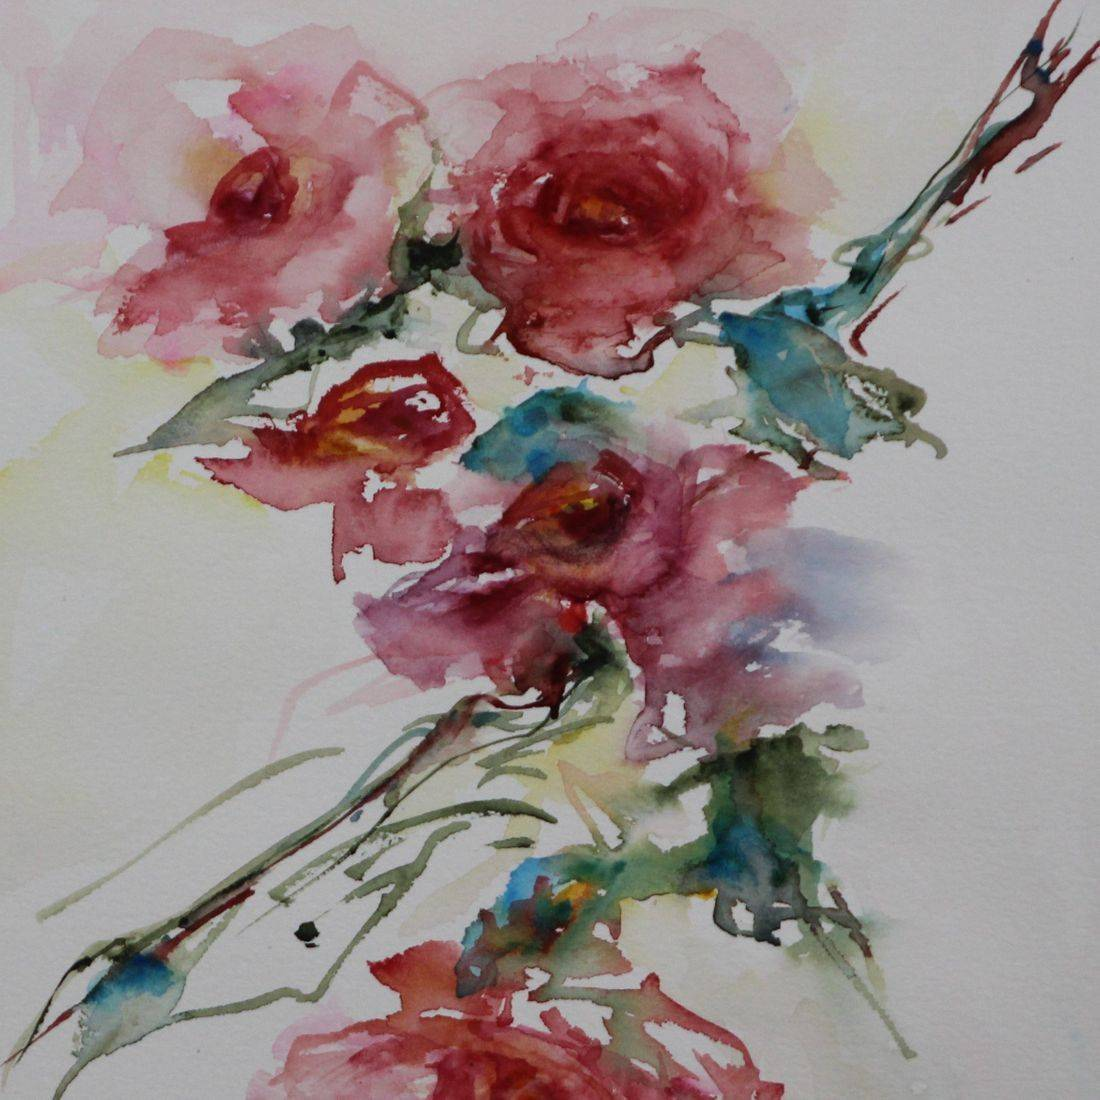 R Putbrese Watercolor, Rebecca Krutsinger watercolor painting of Floral rose